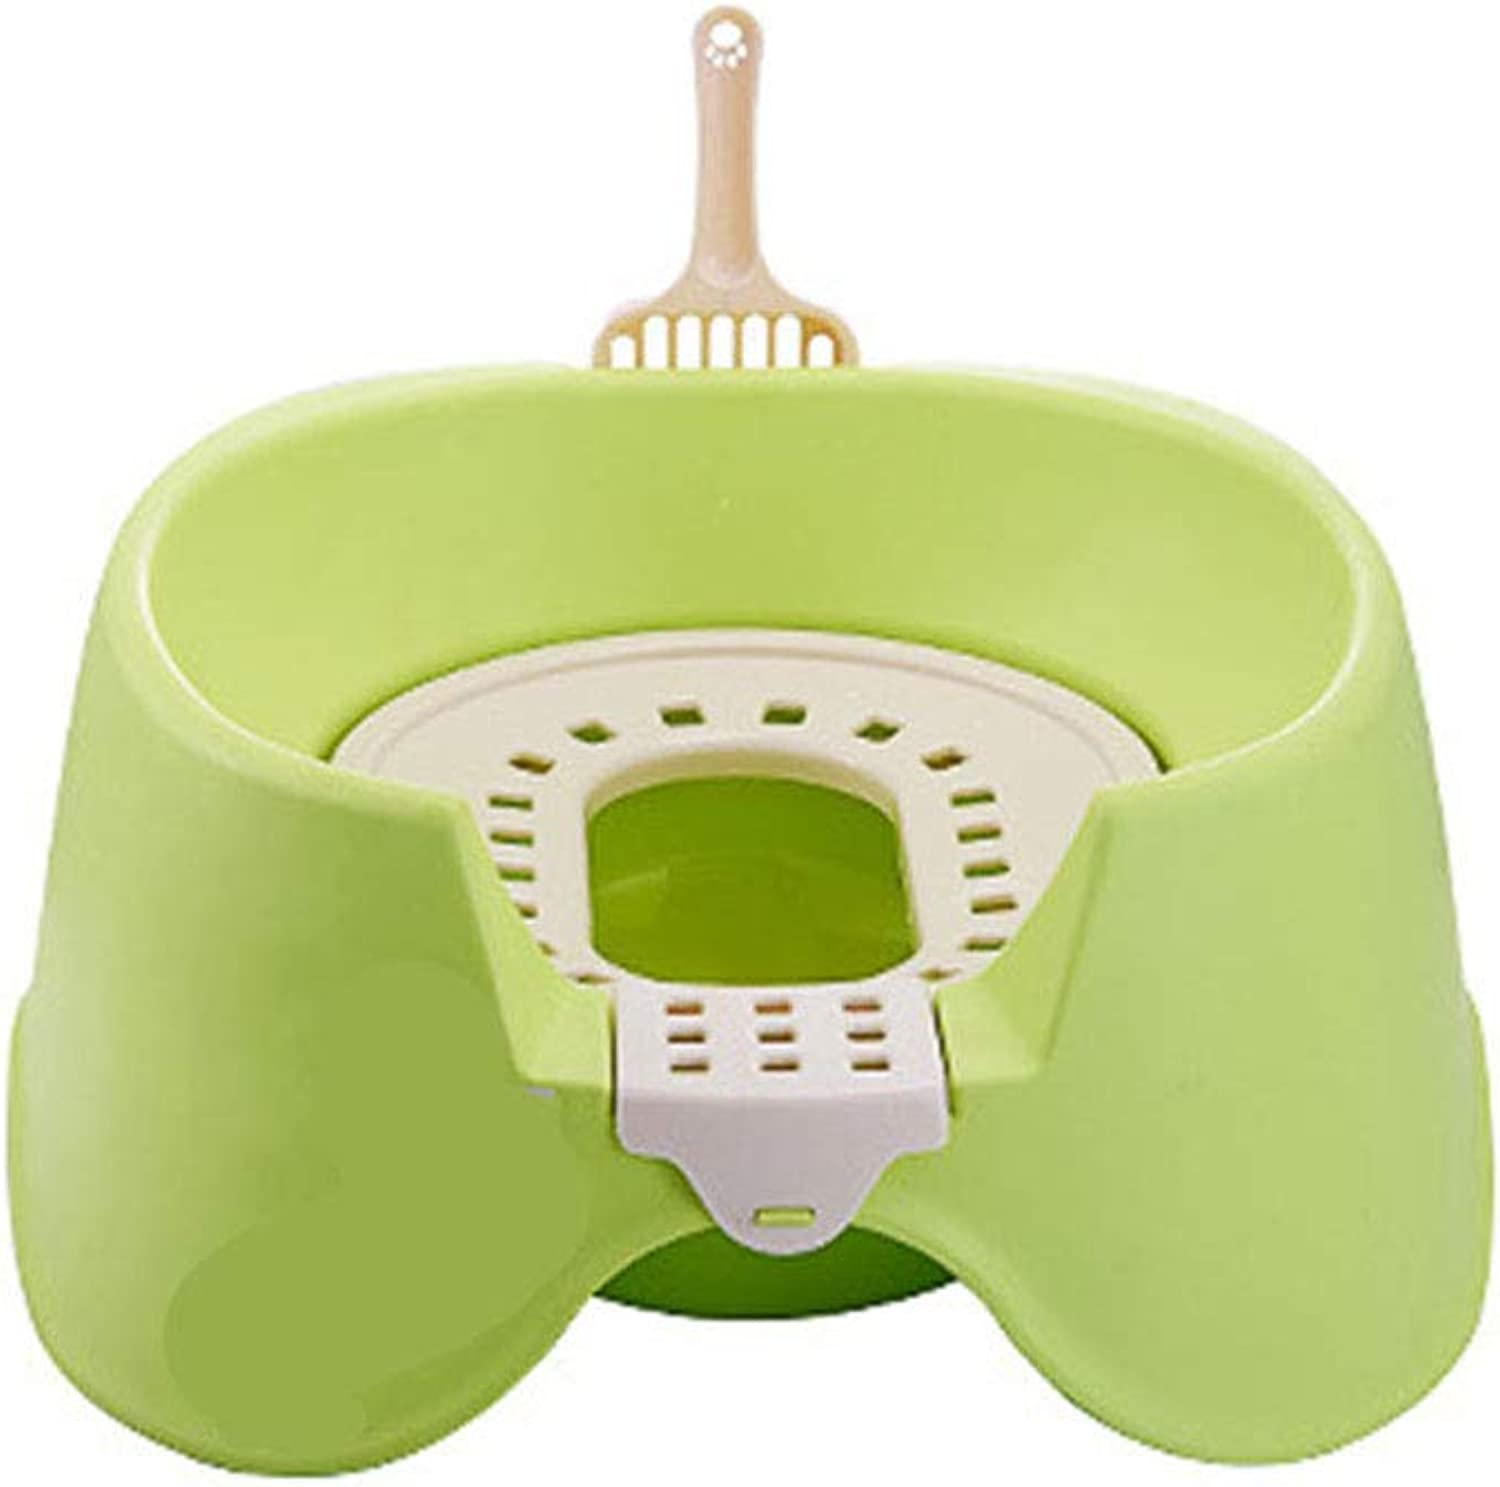 Cat Litter Box Squat Design with Cushion and Cat Litter Spoon Detachable EcoFriendly Safe NonToxic Easy to Clean for Pet Cats Dogs(Green)